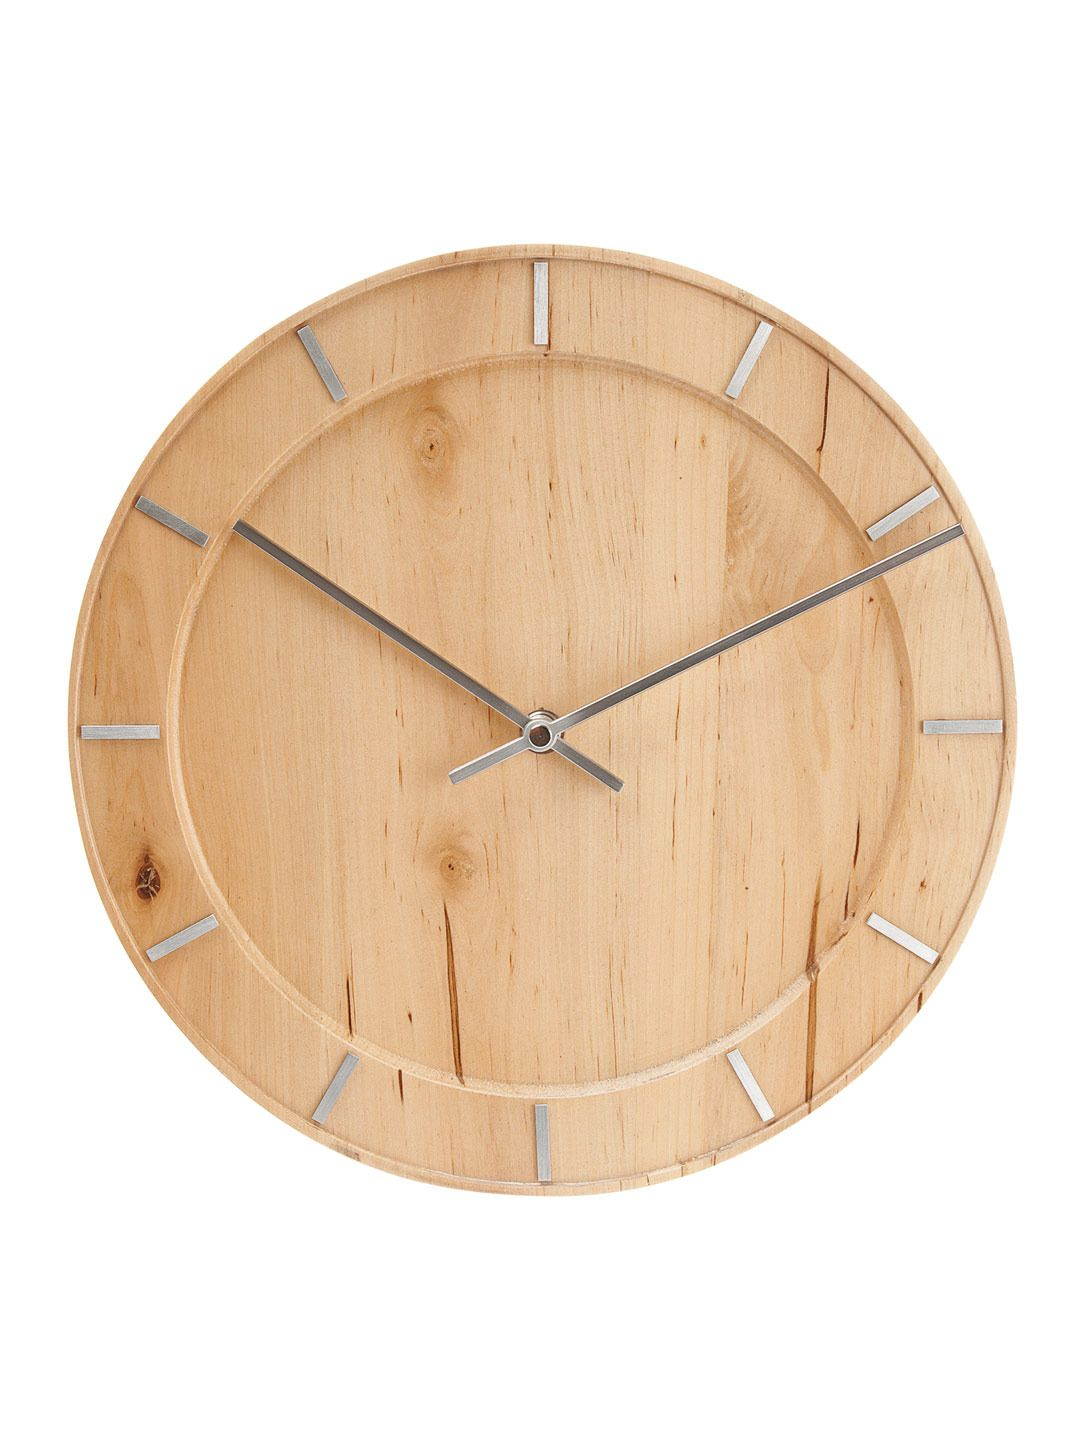 Natural Wood Wall Clock by Karlsson by Present Time at Gilt